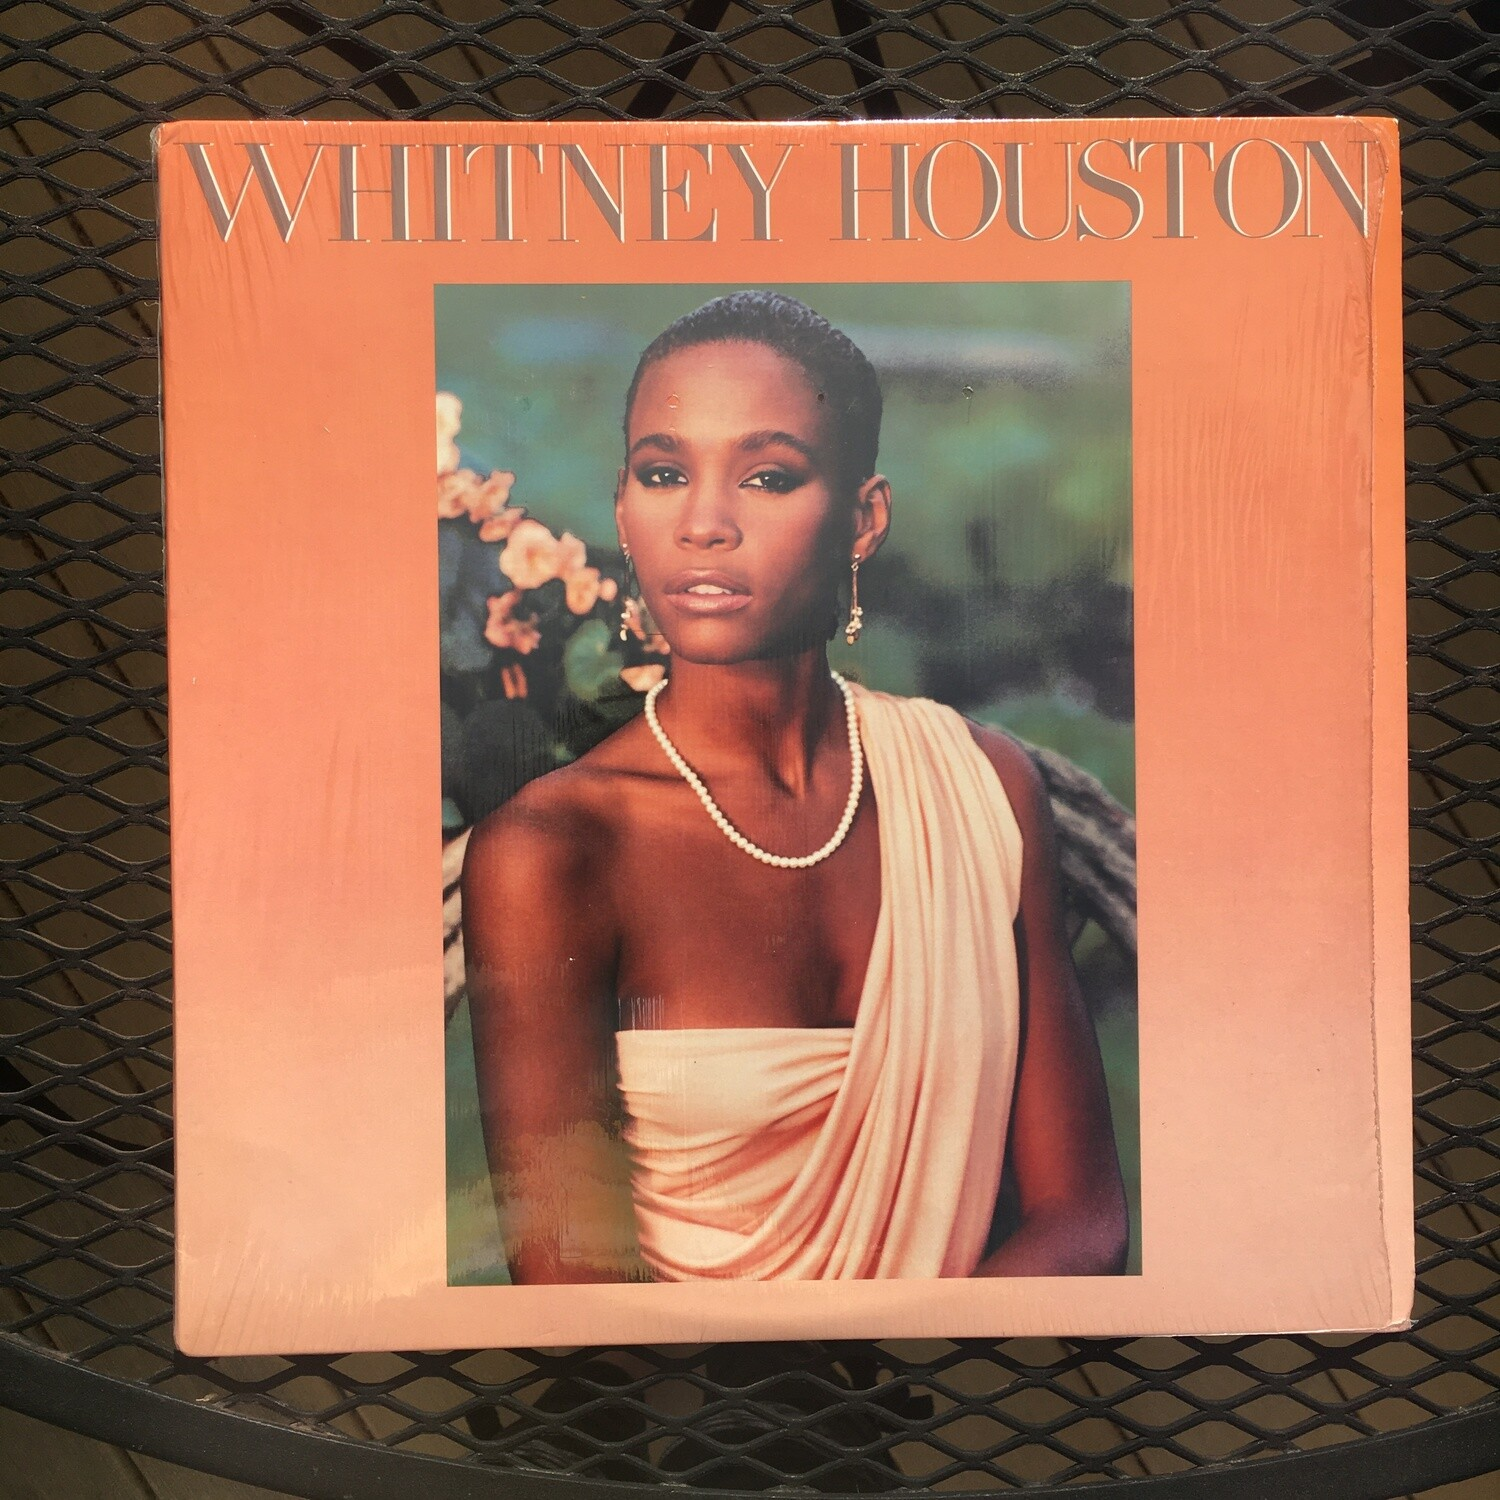 Whitney Houston ~ Self Titled ~ Vinyl LP (Original Pressing) (1985) Arista Records. Excellent Shape. (USED)